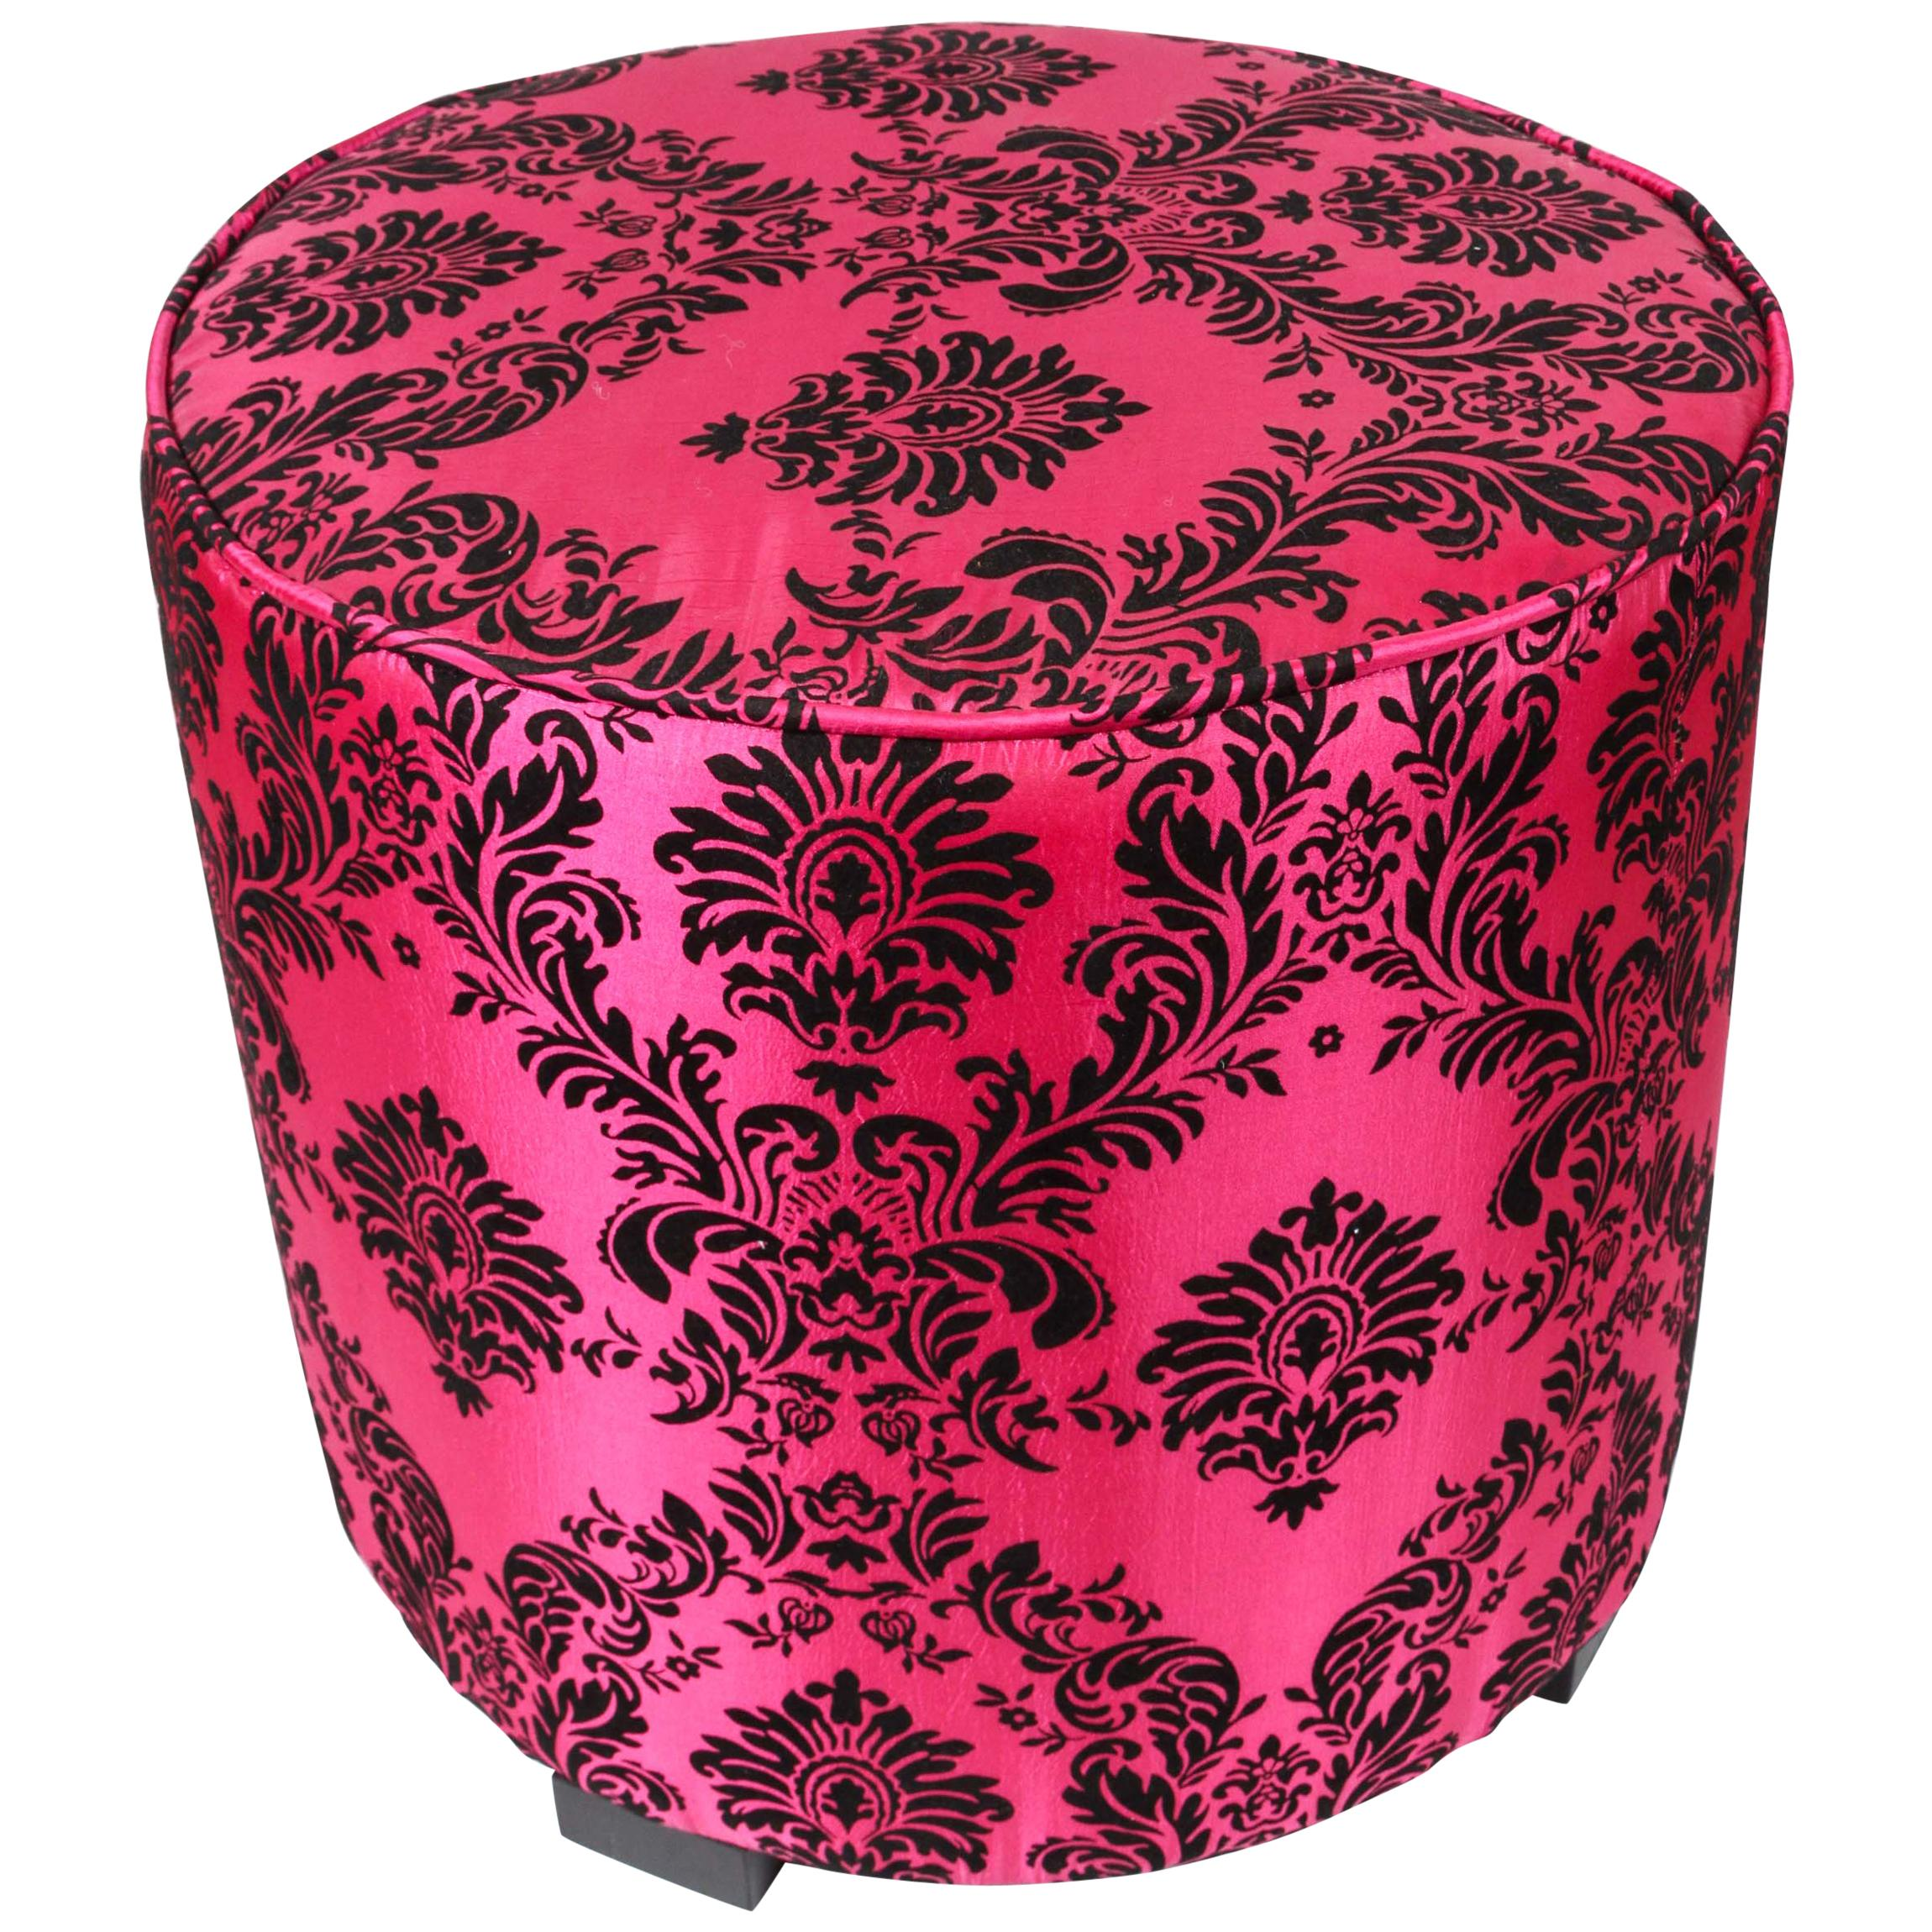 Post Modern Upholstered Moroccan Pouf in Hot Fuchsia Color